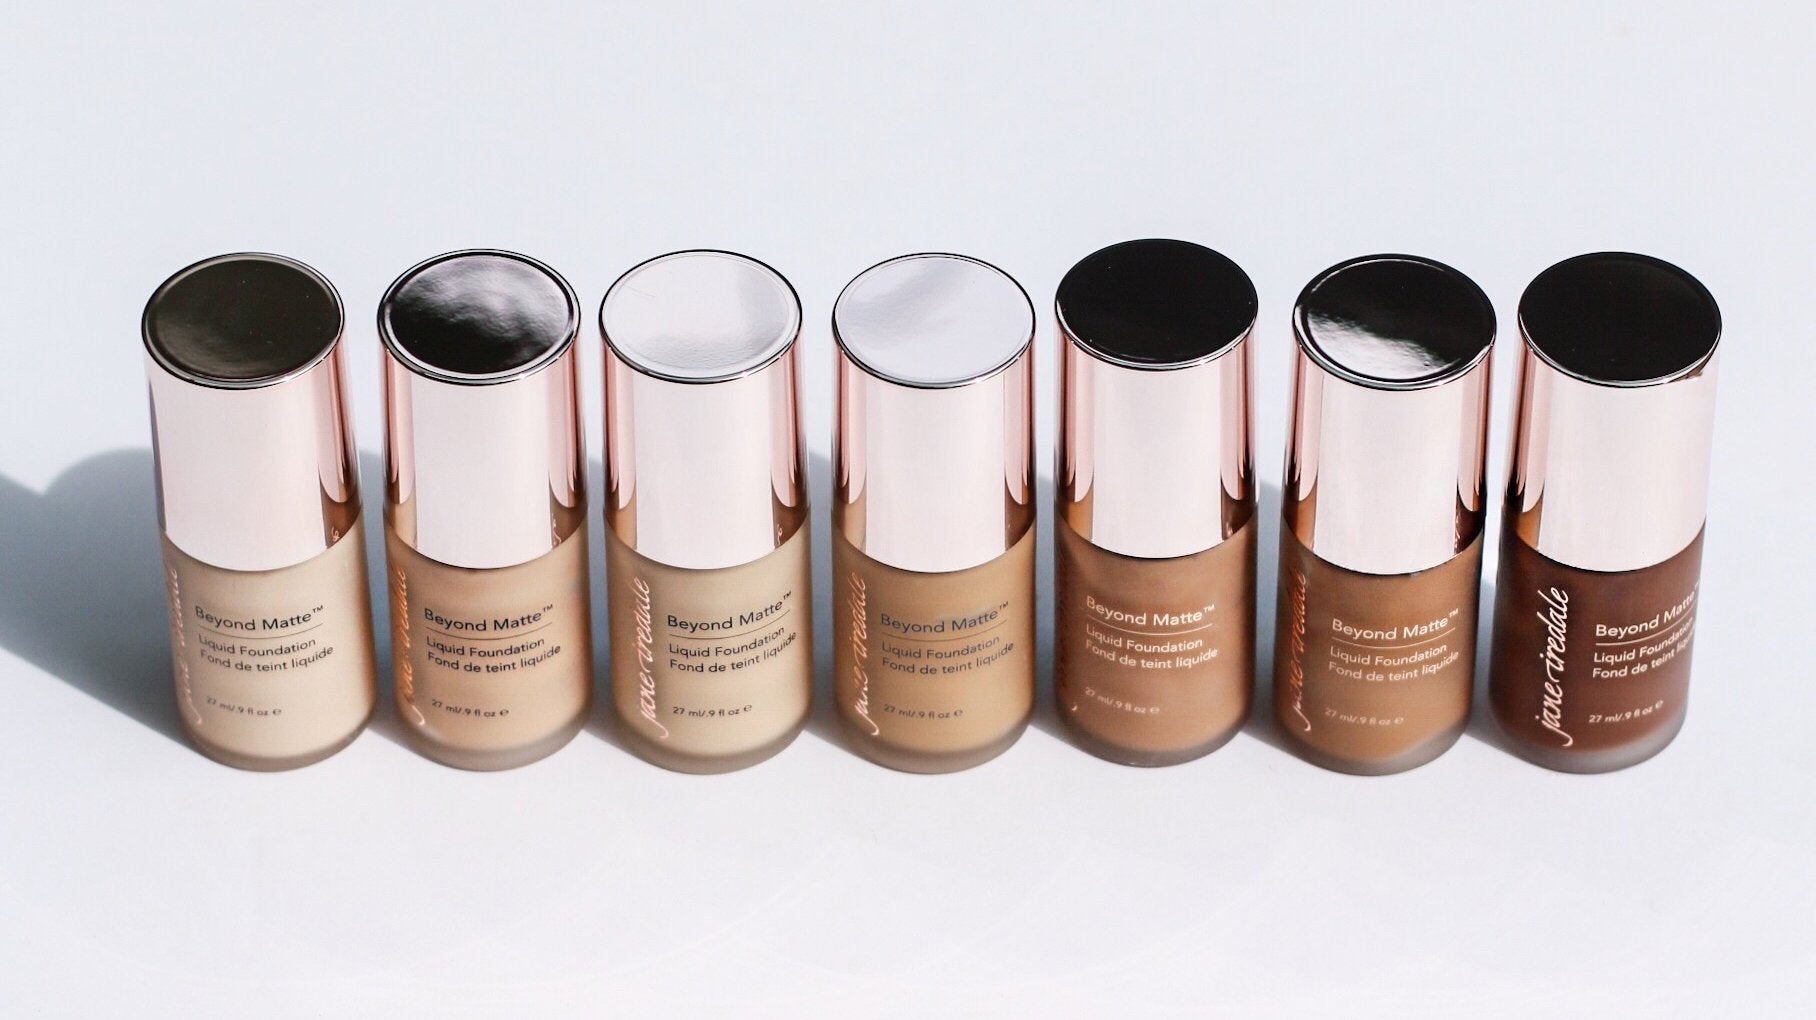 Beyond Matte Liquid Foundations